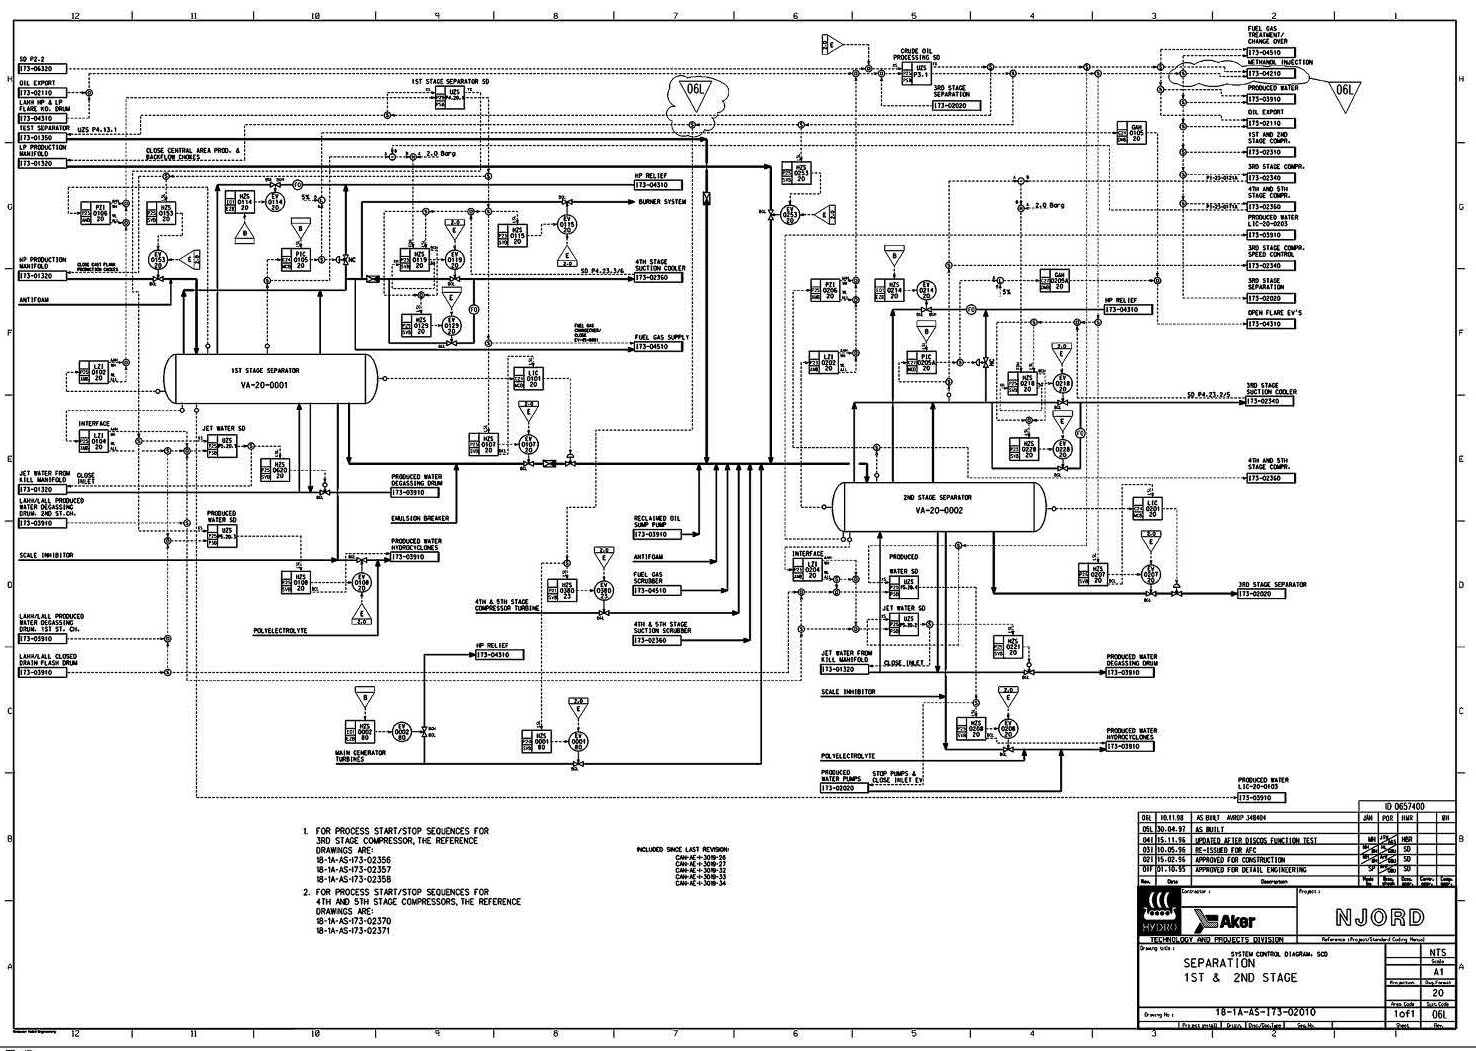 logic diagrams process instrumentation